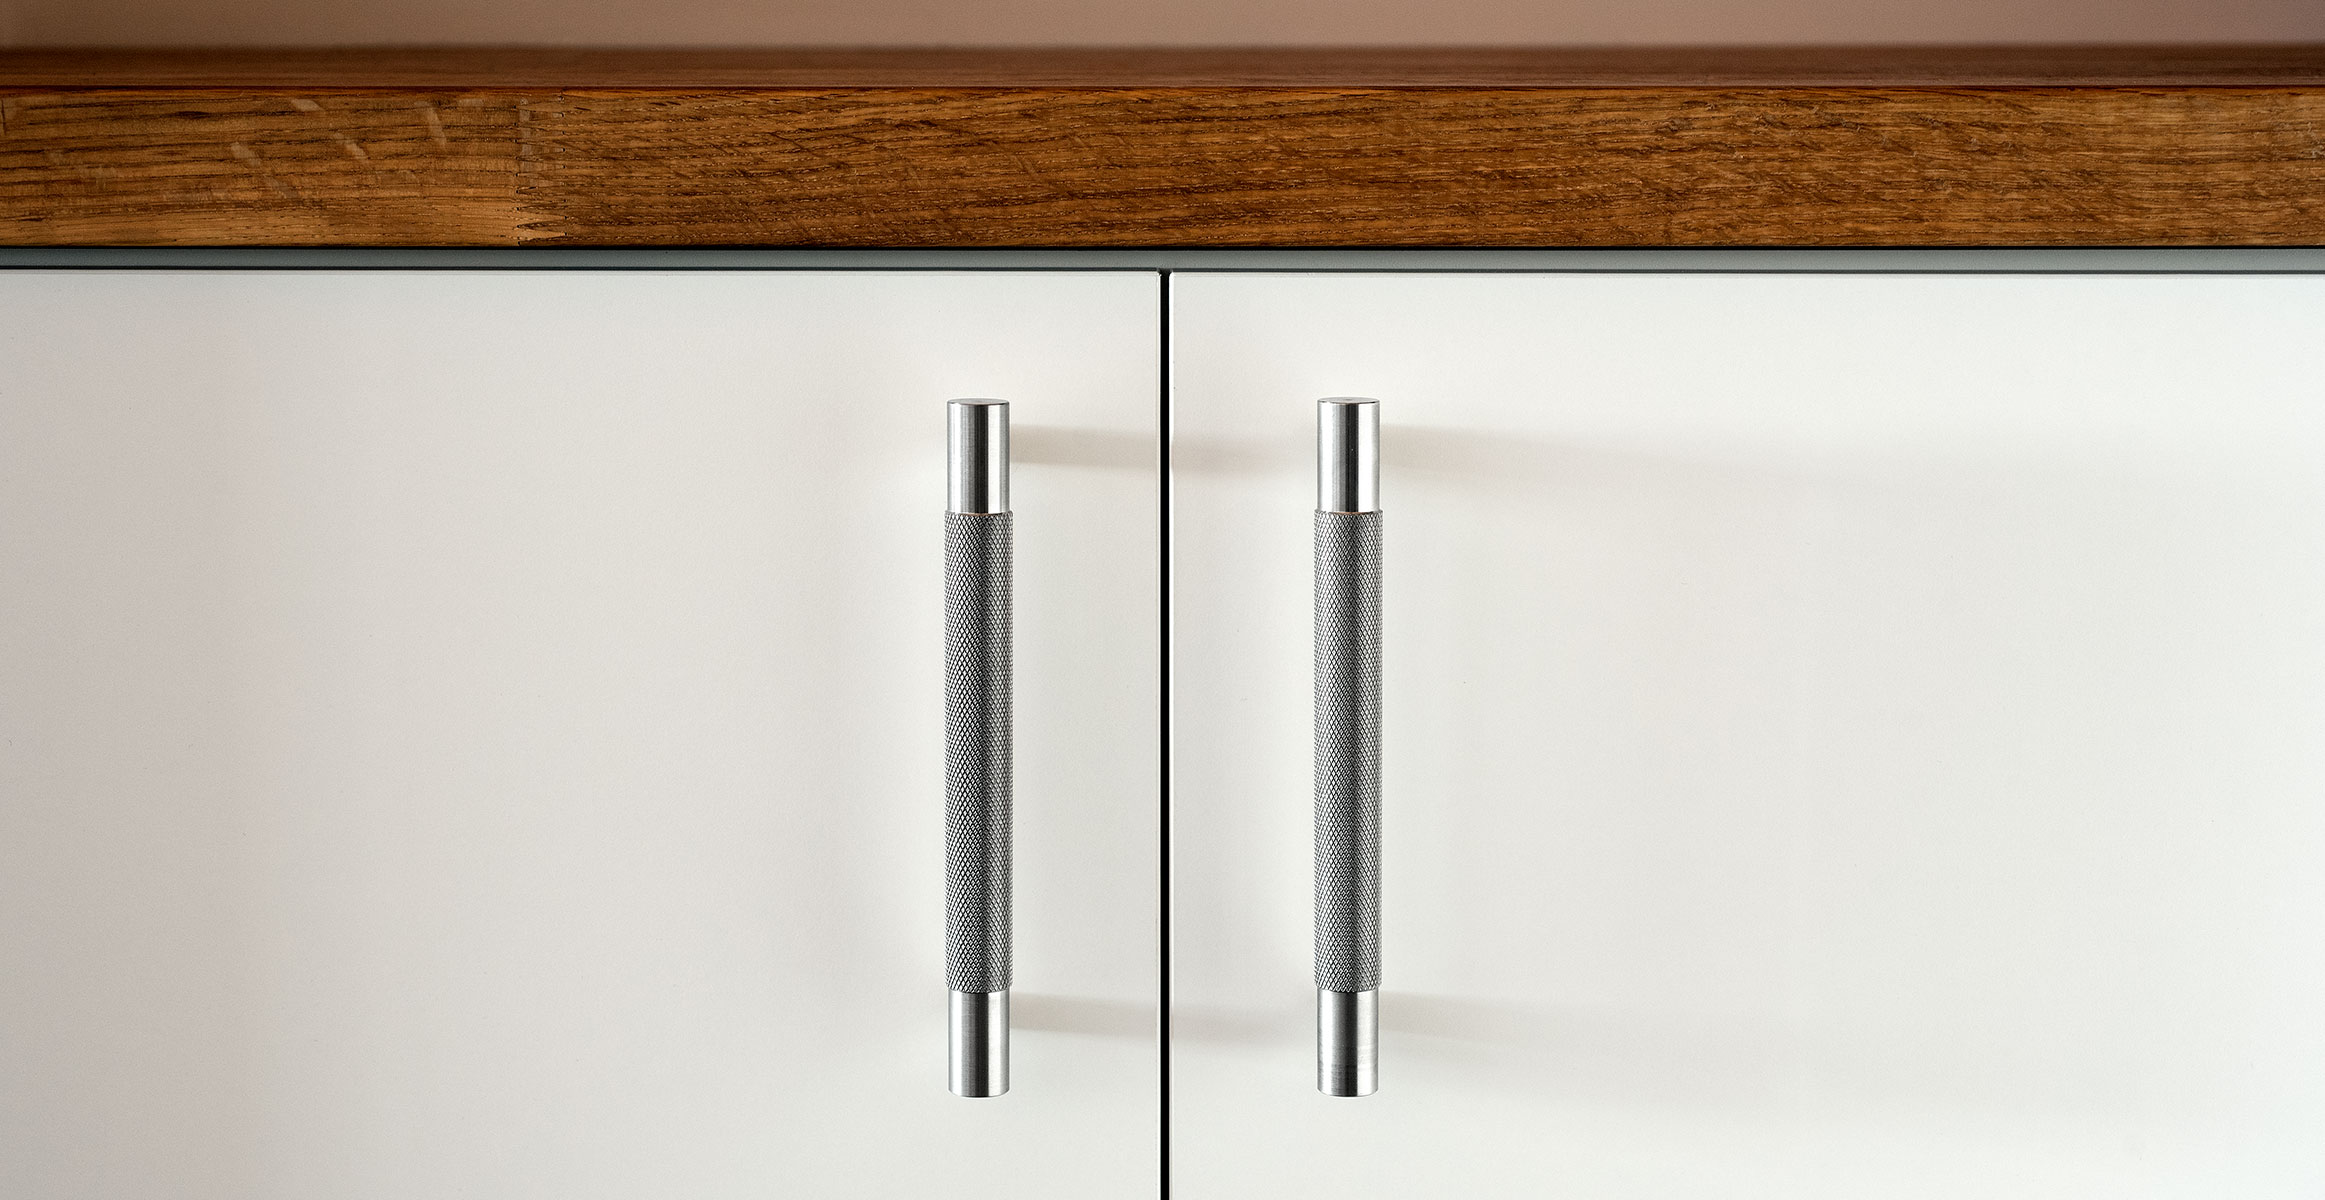 Kor cabinet pulls in stainless finish installed on kitchen cabinet